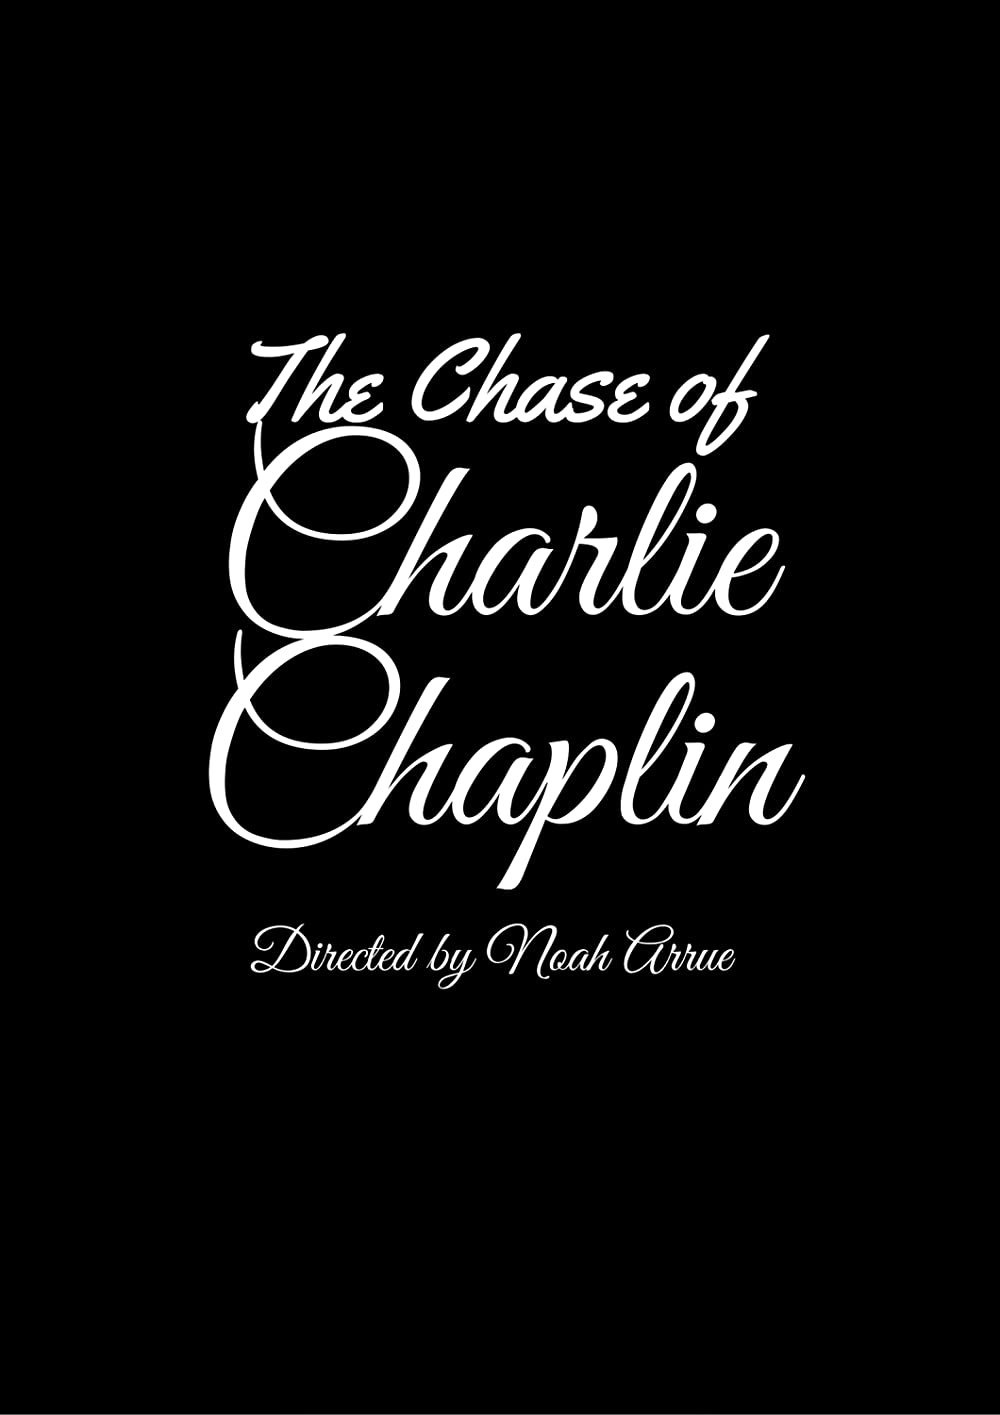 The Chase of Charlie Chaplin 2017